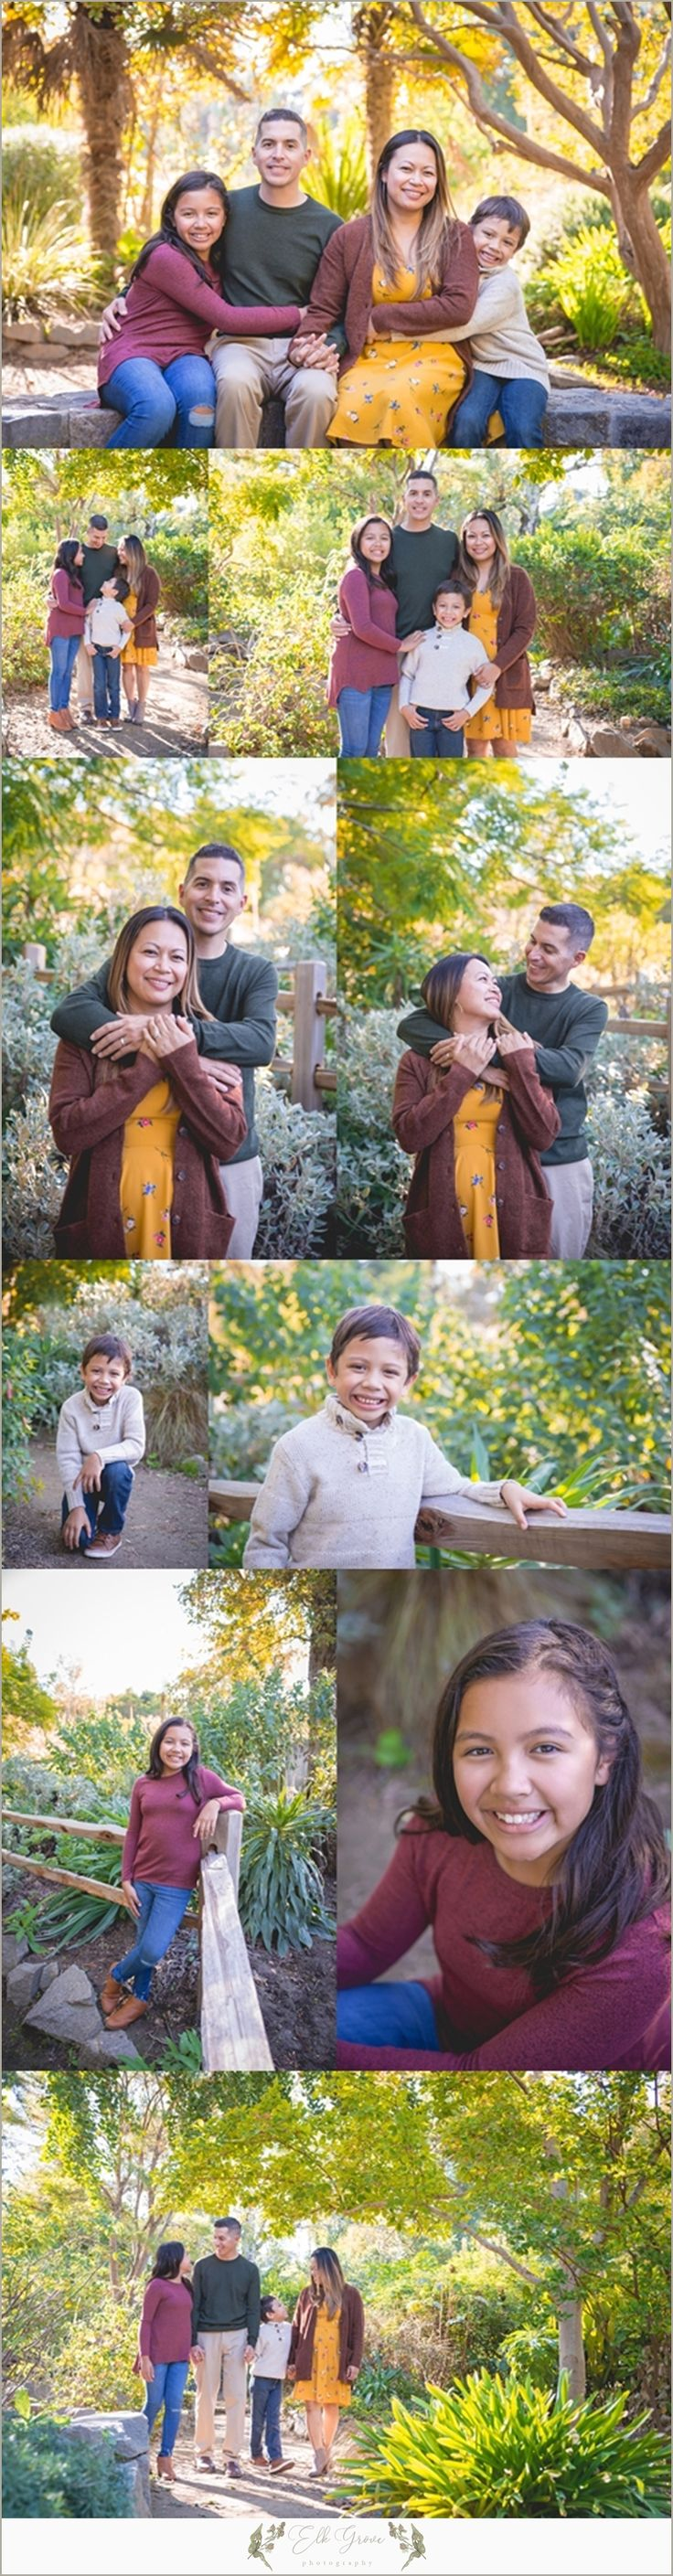 Family of 4. Family Photography by Elk Grove Photography - Natural Light - Posing Ideas for Families, Siblings, Parents, Couples, and Large Groups. Unposed Candid Ideas. Family Photography Outfit Ideas and Color Palettes. Sacramento, CA. Fall Colors. Fall Portraits. Maroon and Mustard Yellow and Forest Green.